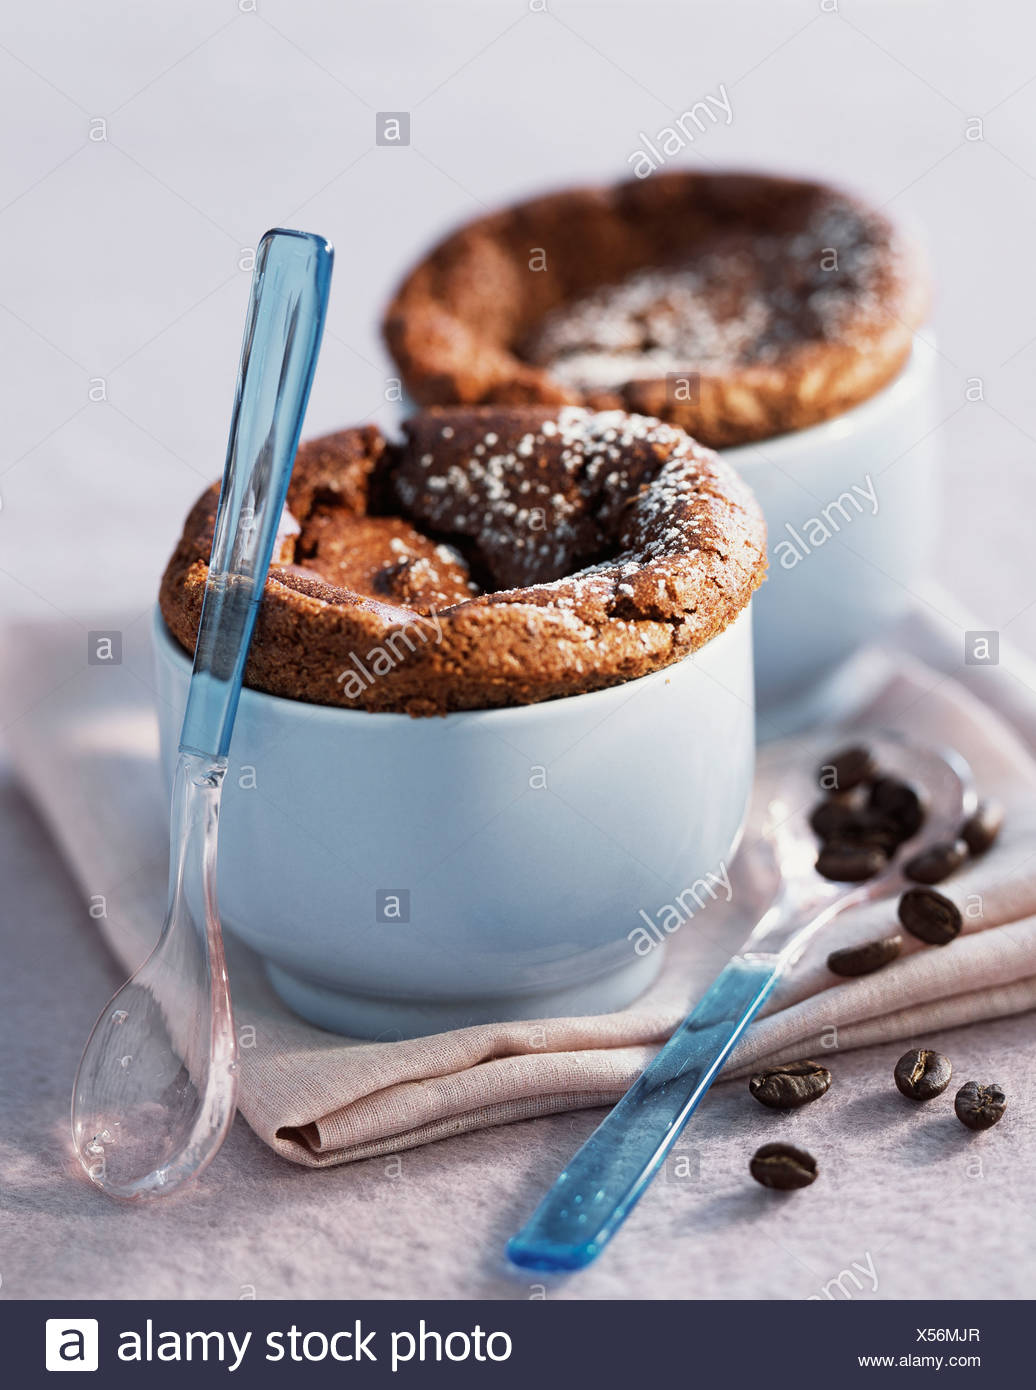 Coffee souffle - Stock Image